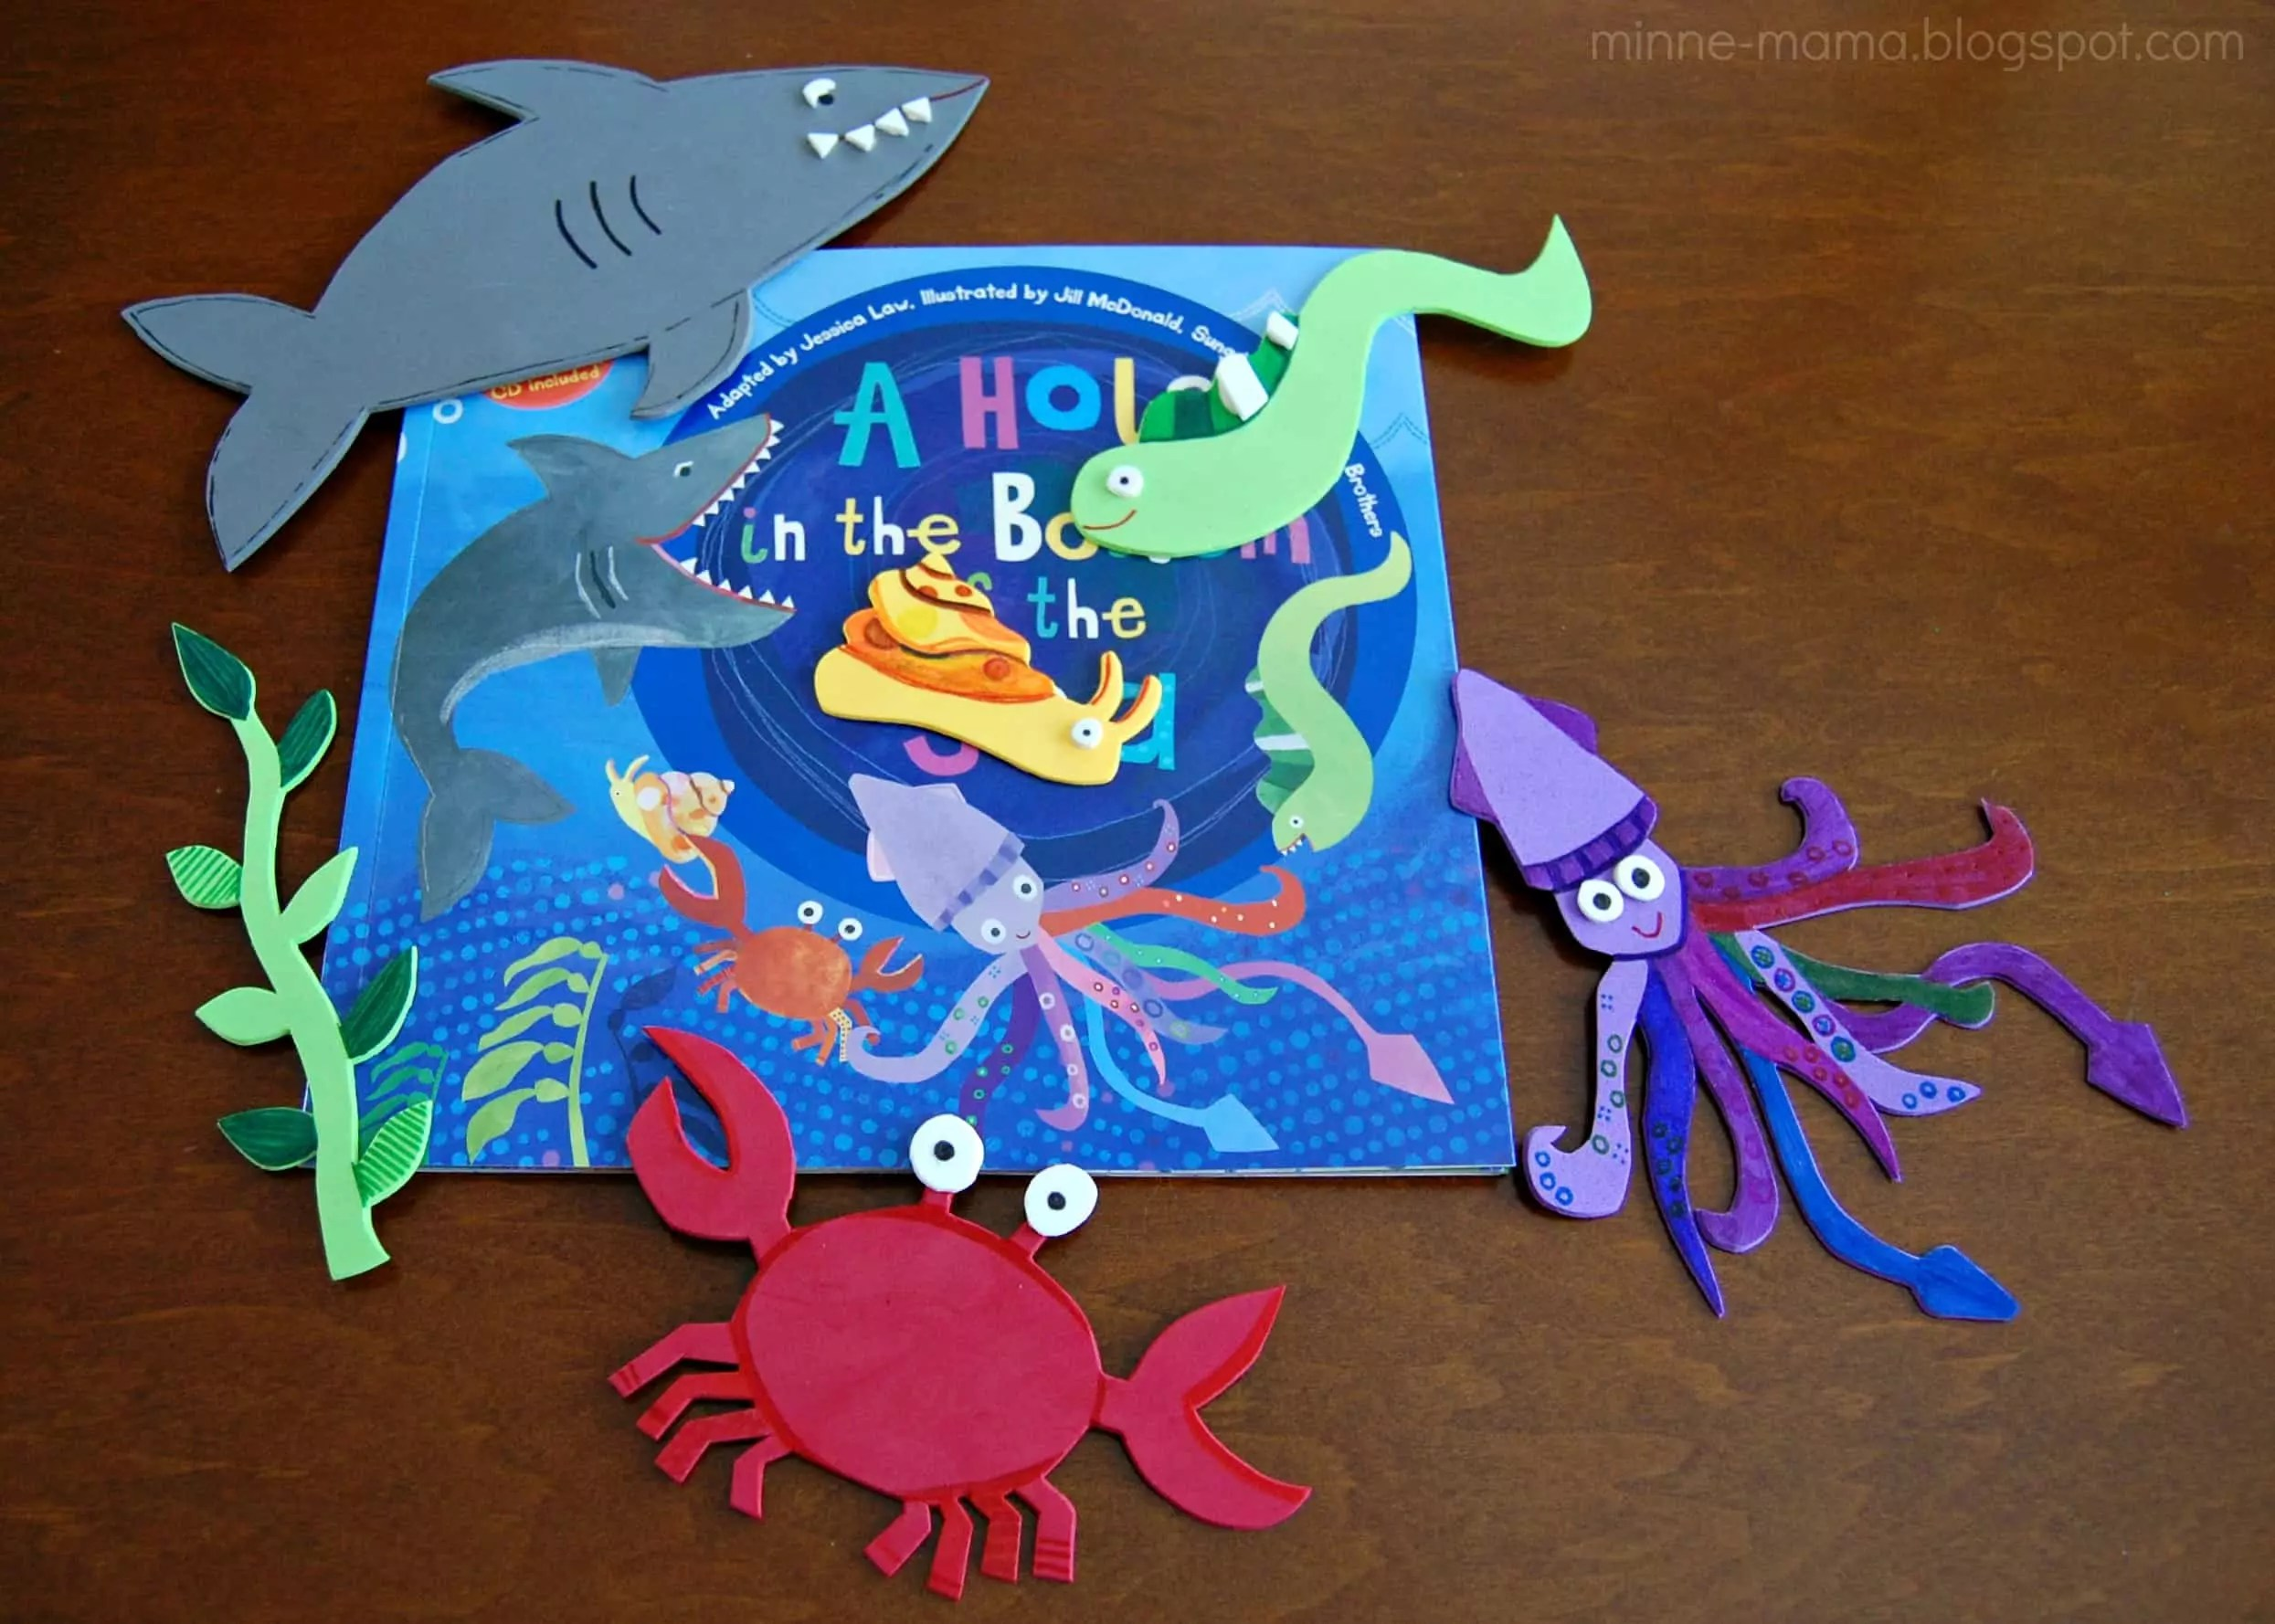 Imaginative Play With A Hole In The Bottom Of The Sea